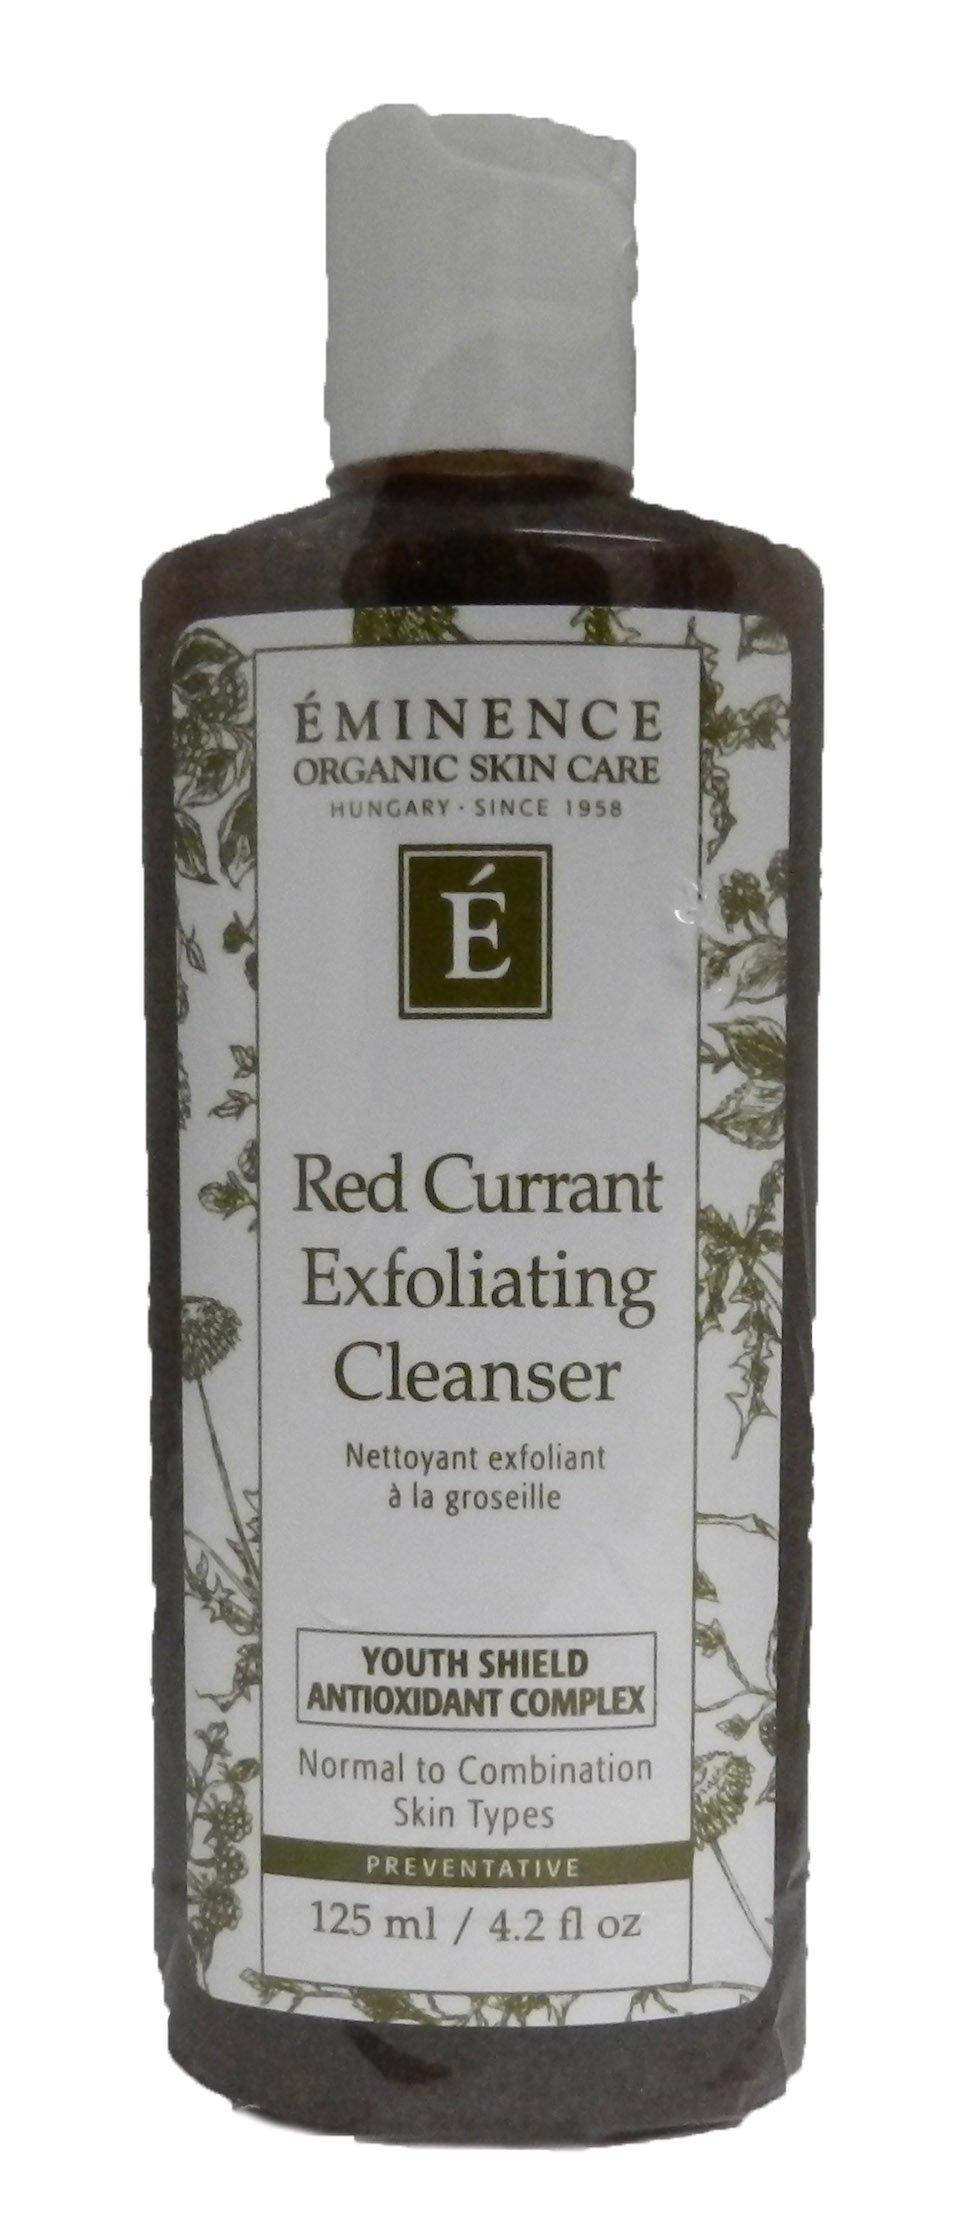 Eminence Organic Skincare Red currant exfoliating cleanser 4.2 oz, 4.2 Ounce